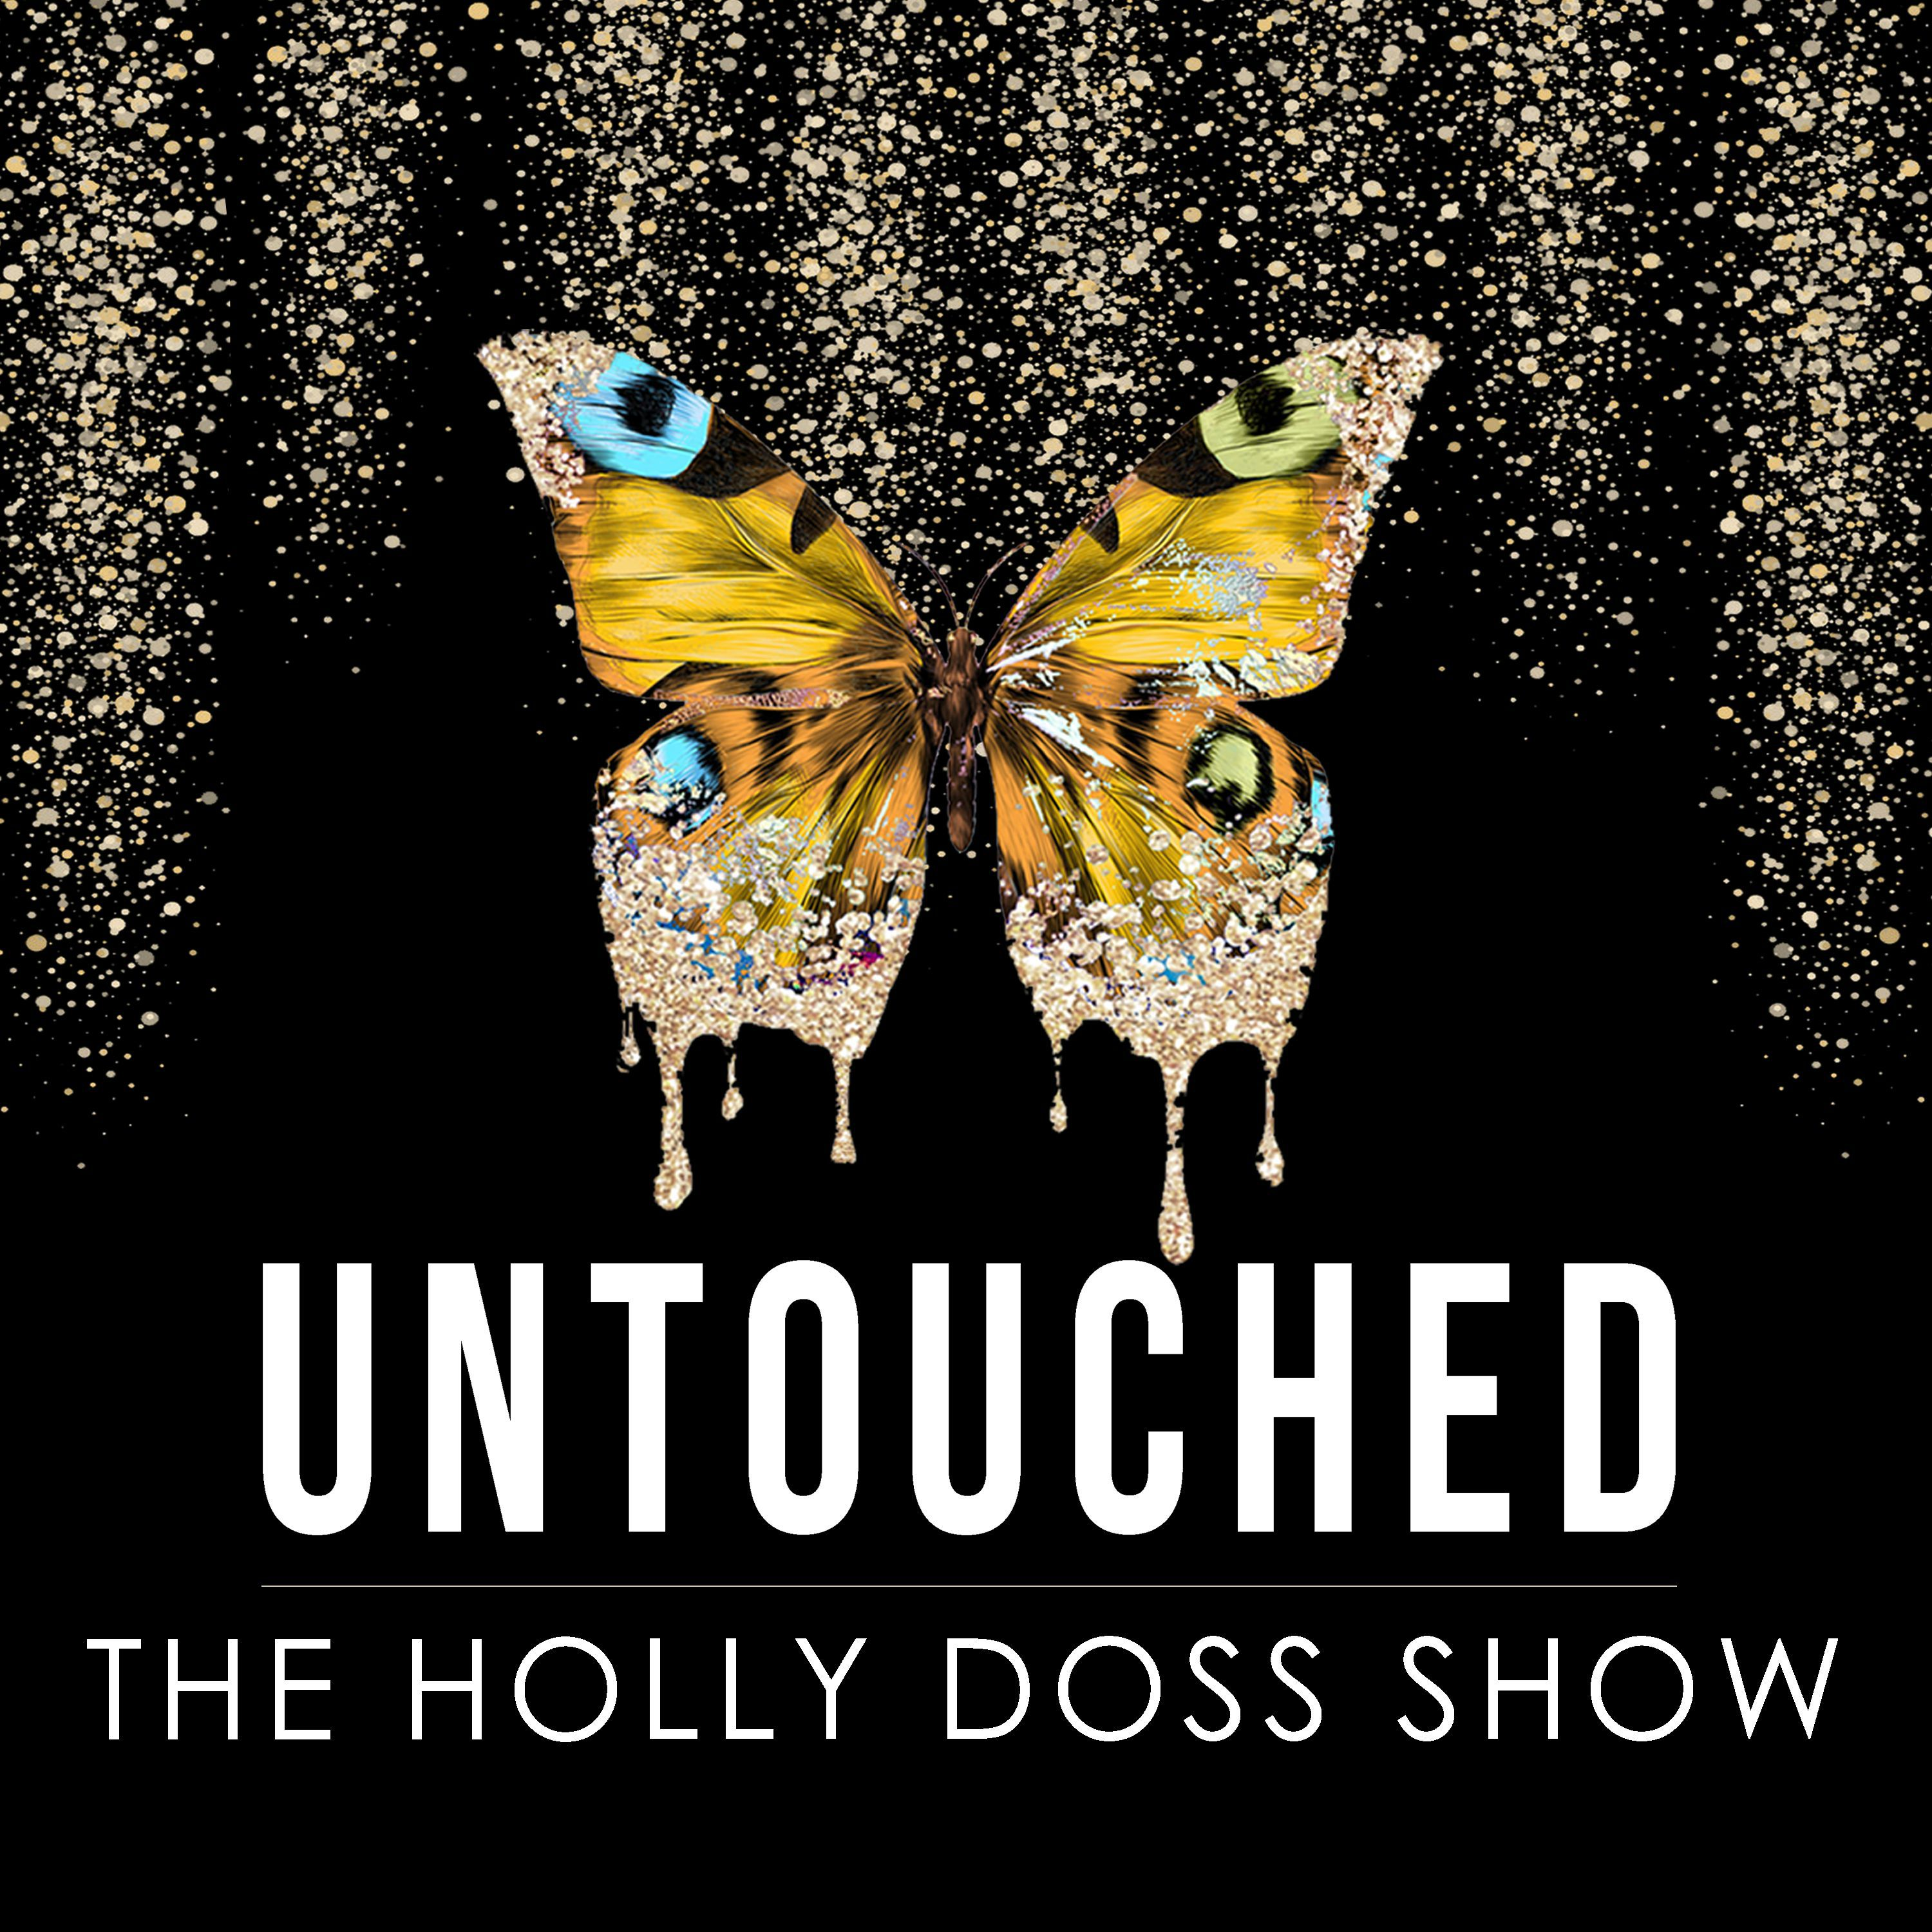 UNTOUCHED: The Holly Doss Show